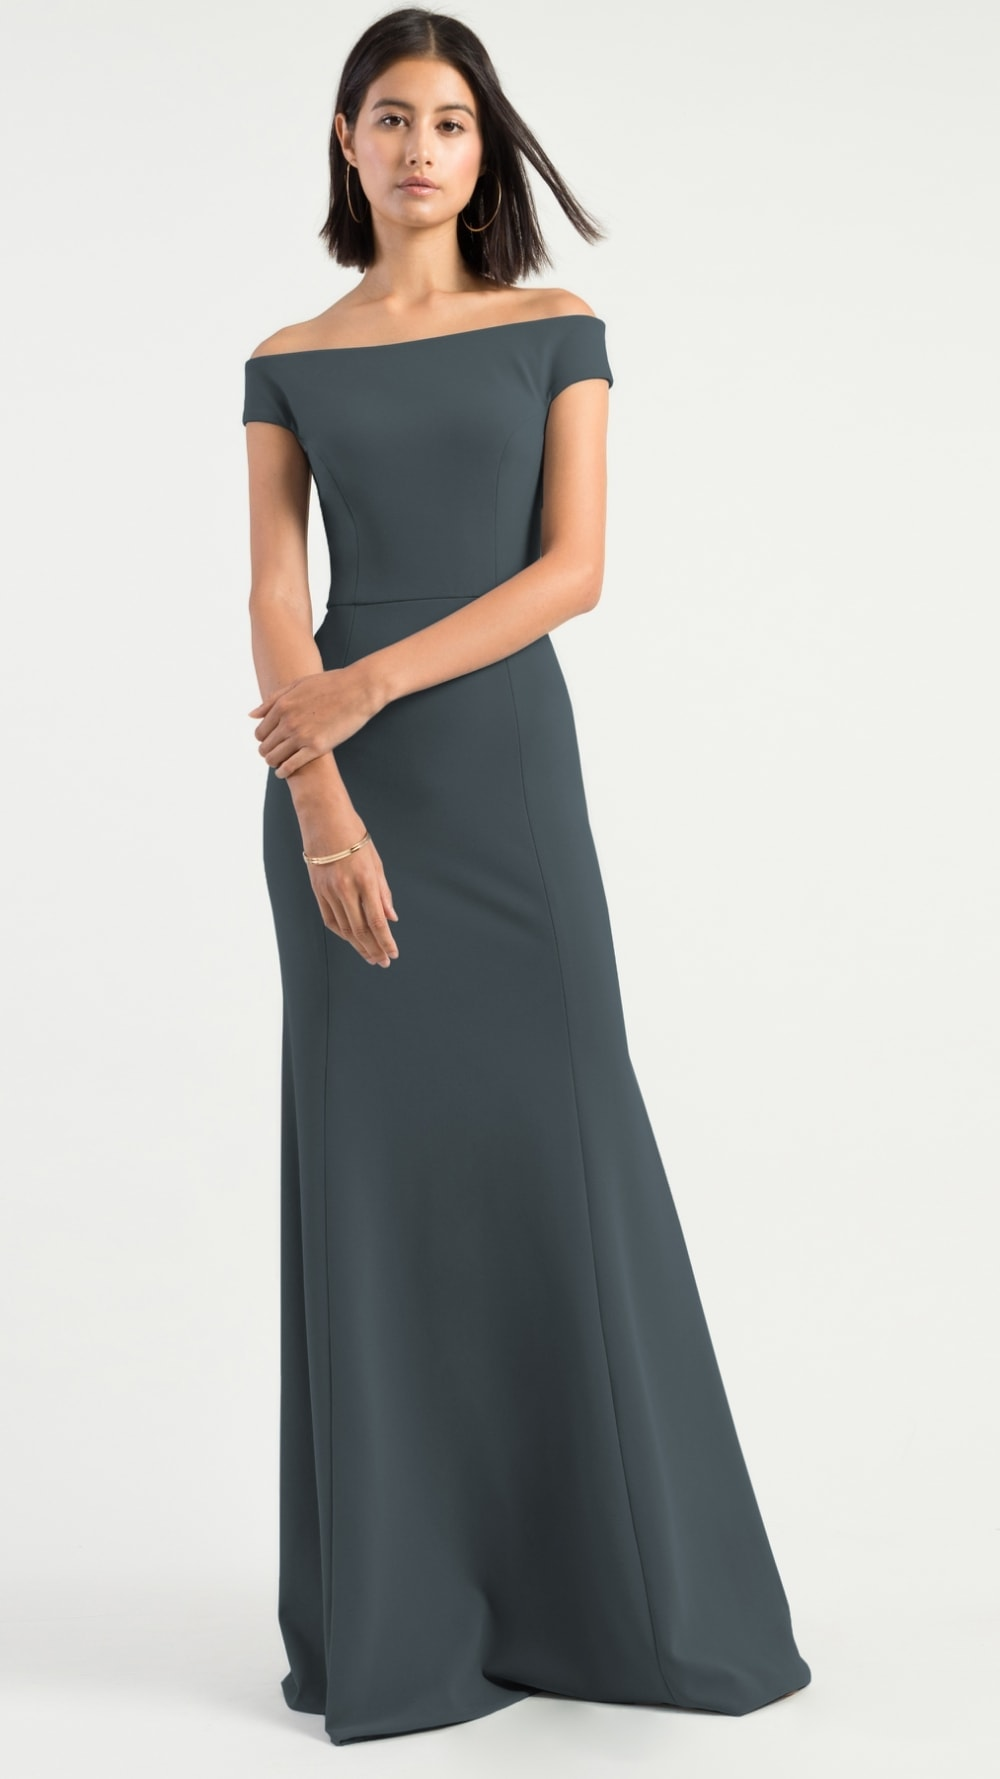 Off the shoulder bridesmaid dress | Larson Jenny Yoo